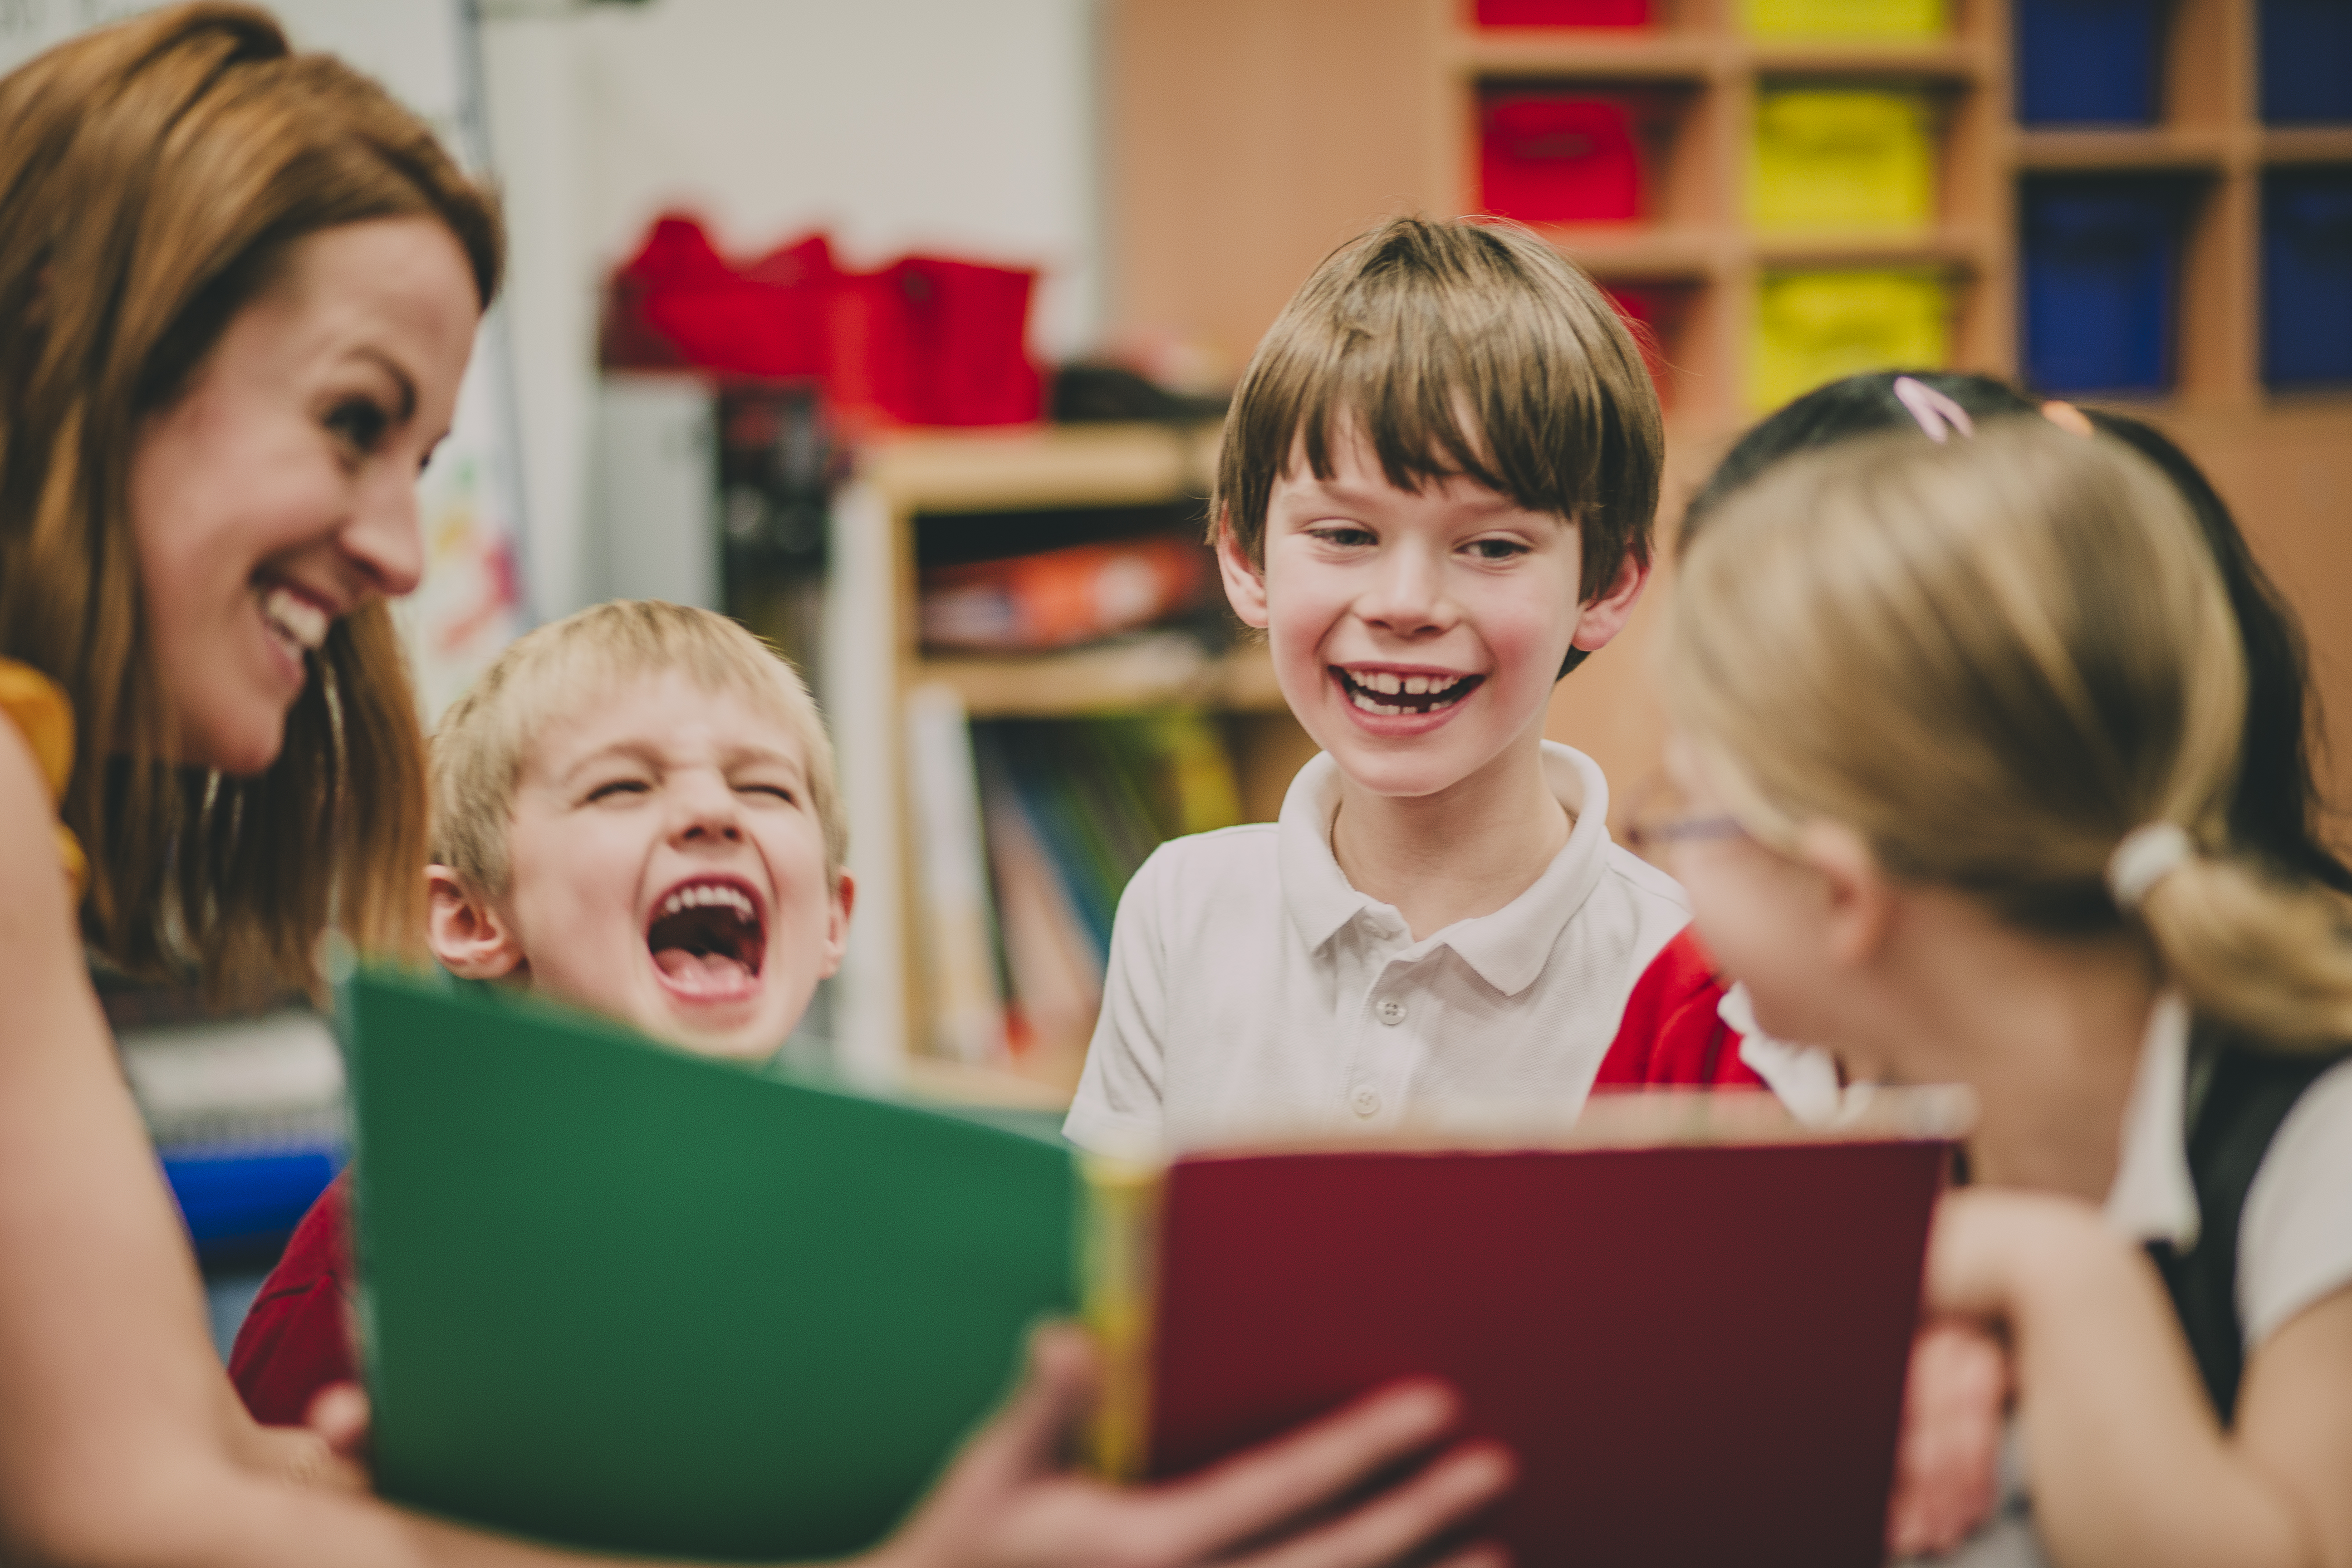 An image of preschoolers laughing.